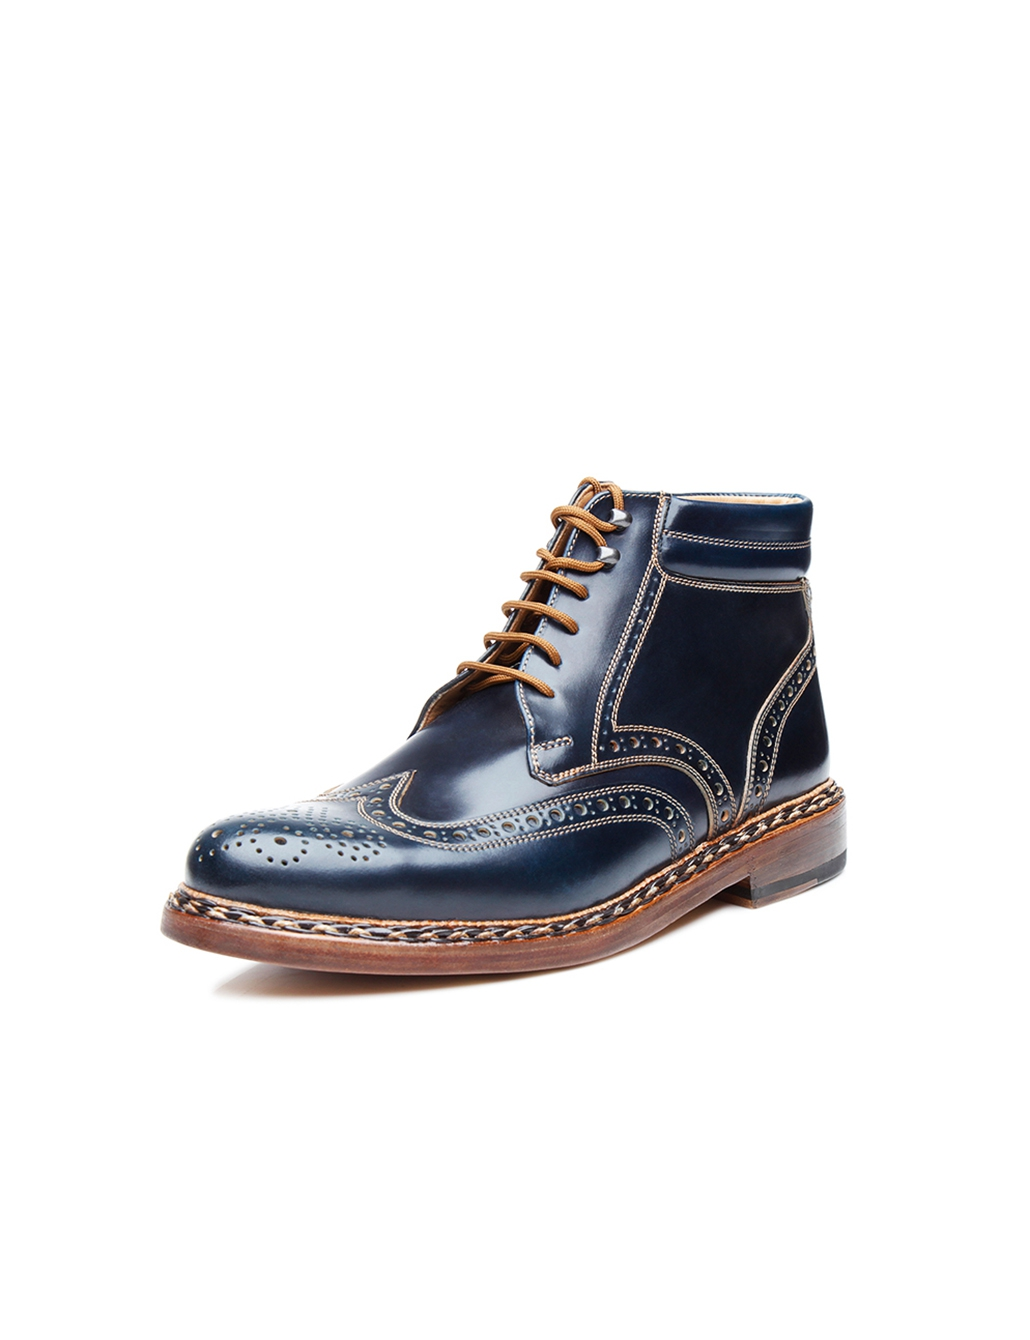 95b23edd5c6 Luxurious men's lace-up boot made of shell cordovan